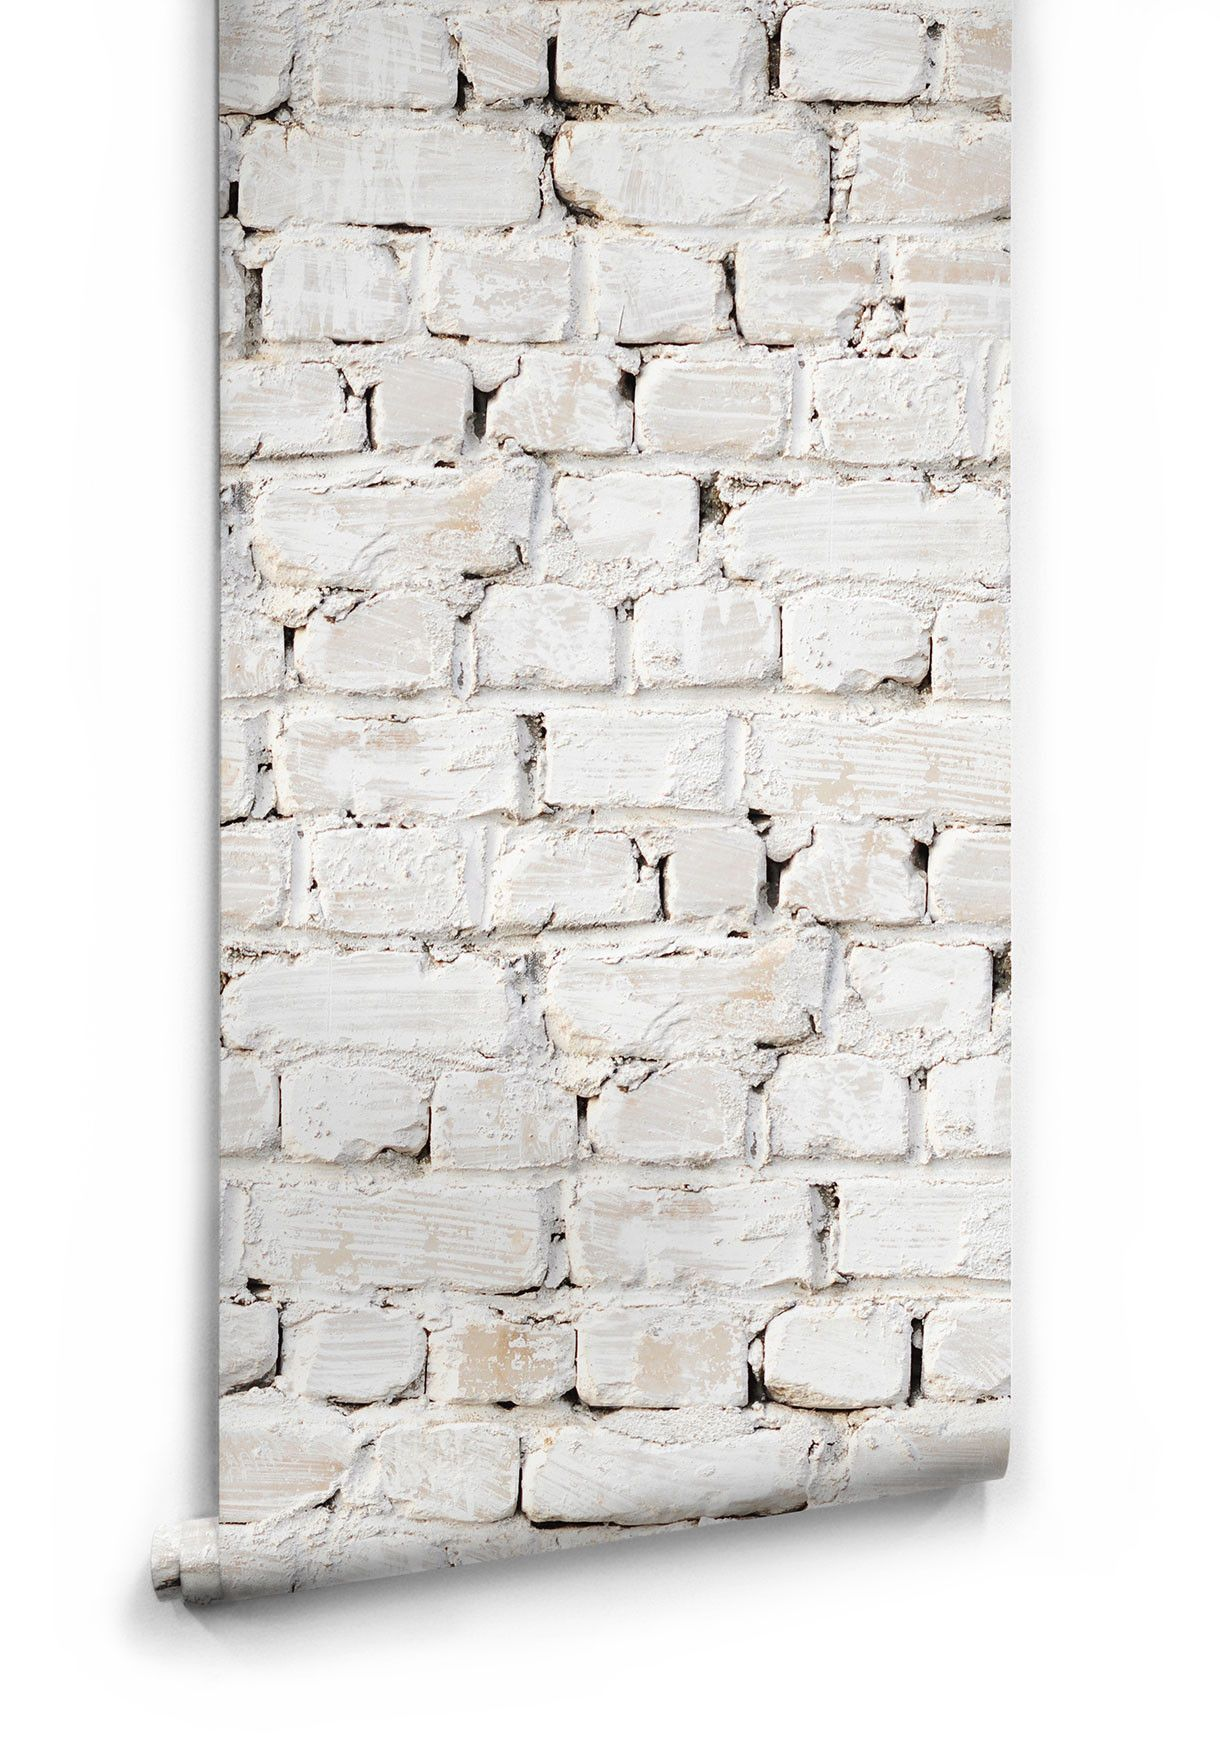 kitchen wallpaper designs Sample of Whitewash Bricks Boutique Faux Wallpaper design by Milton King